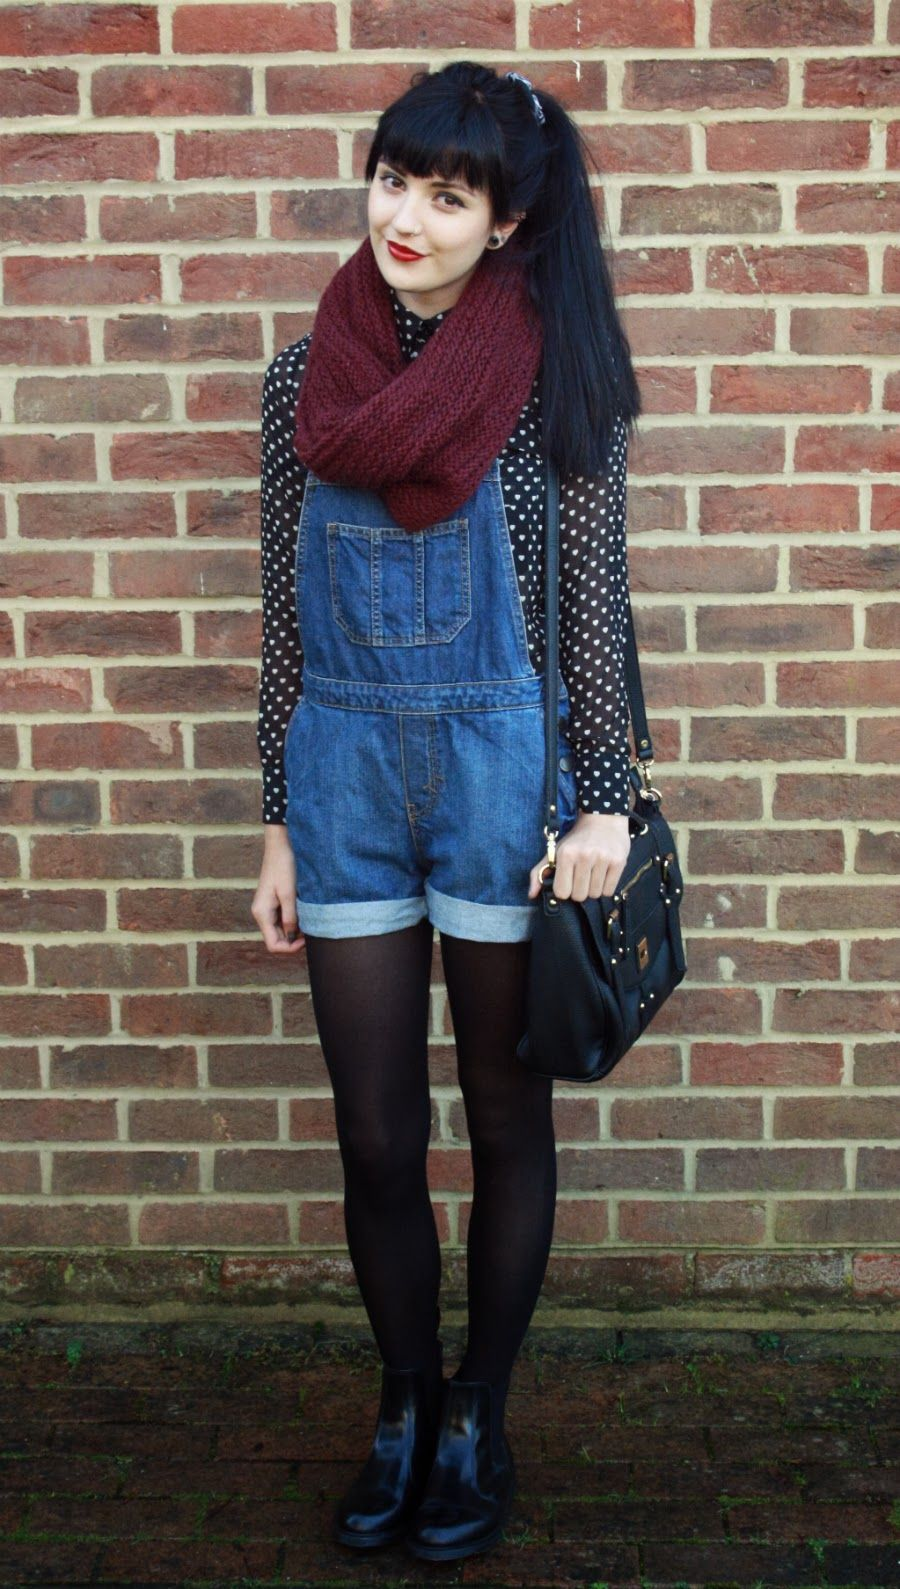 dotted heart print top with overall shorts i